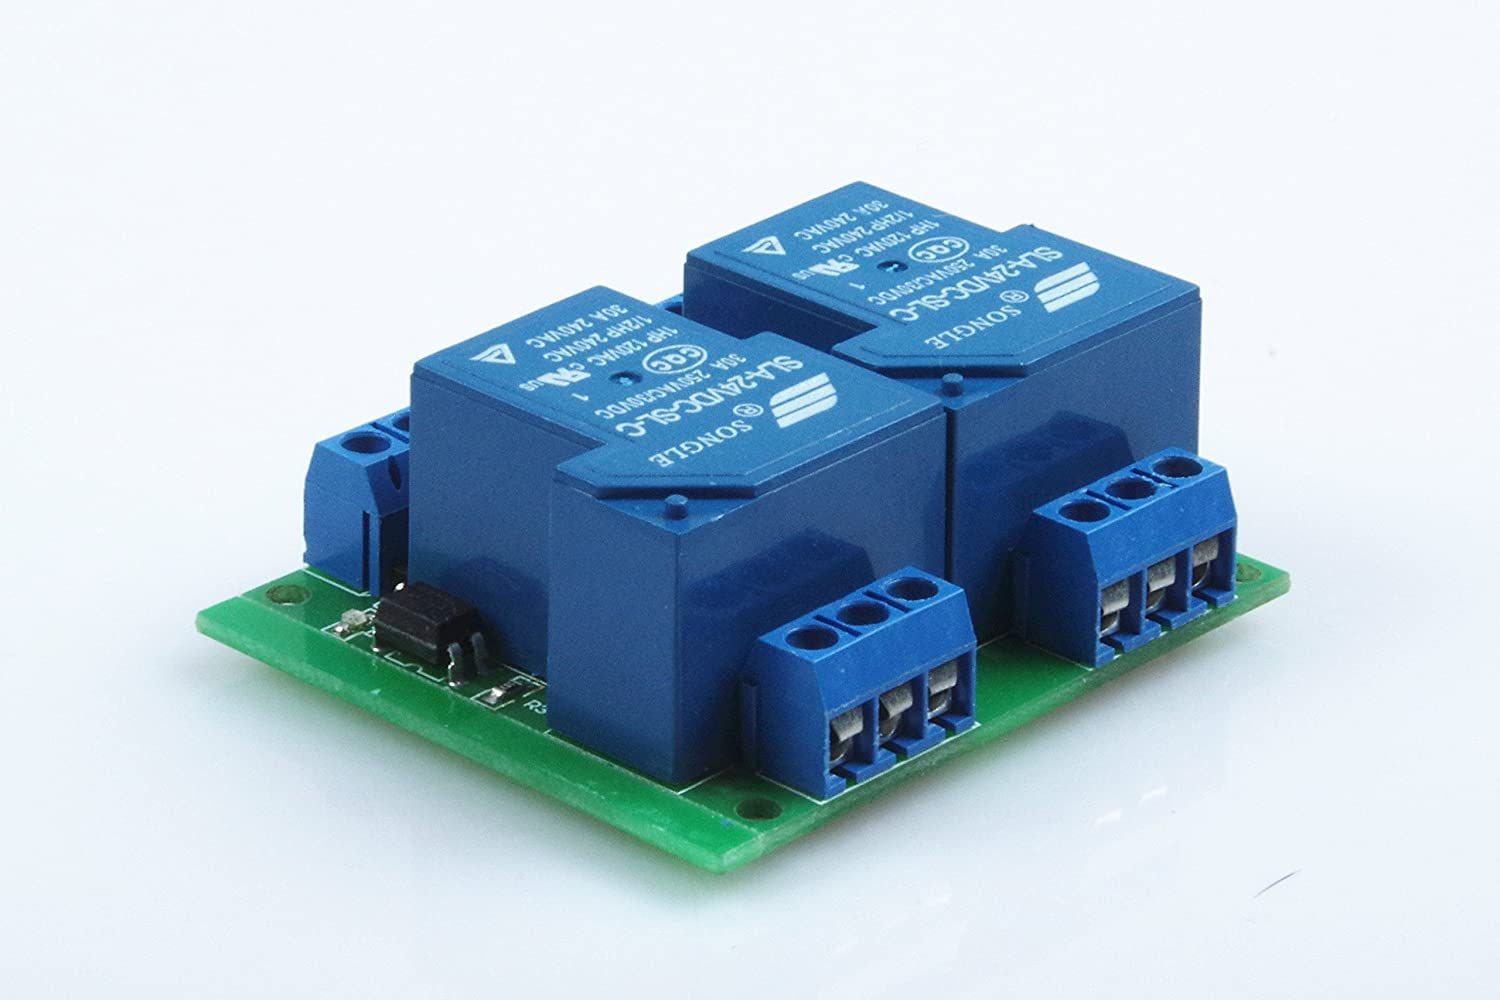 Knacro Dc 24v Sla 24vdc Sl C Ac 250v 30a Dual Dc5v To Dc30v Converter By 74hc14 Relay Module Two Way 2 Optocoupler Isolation Home Audio Theater